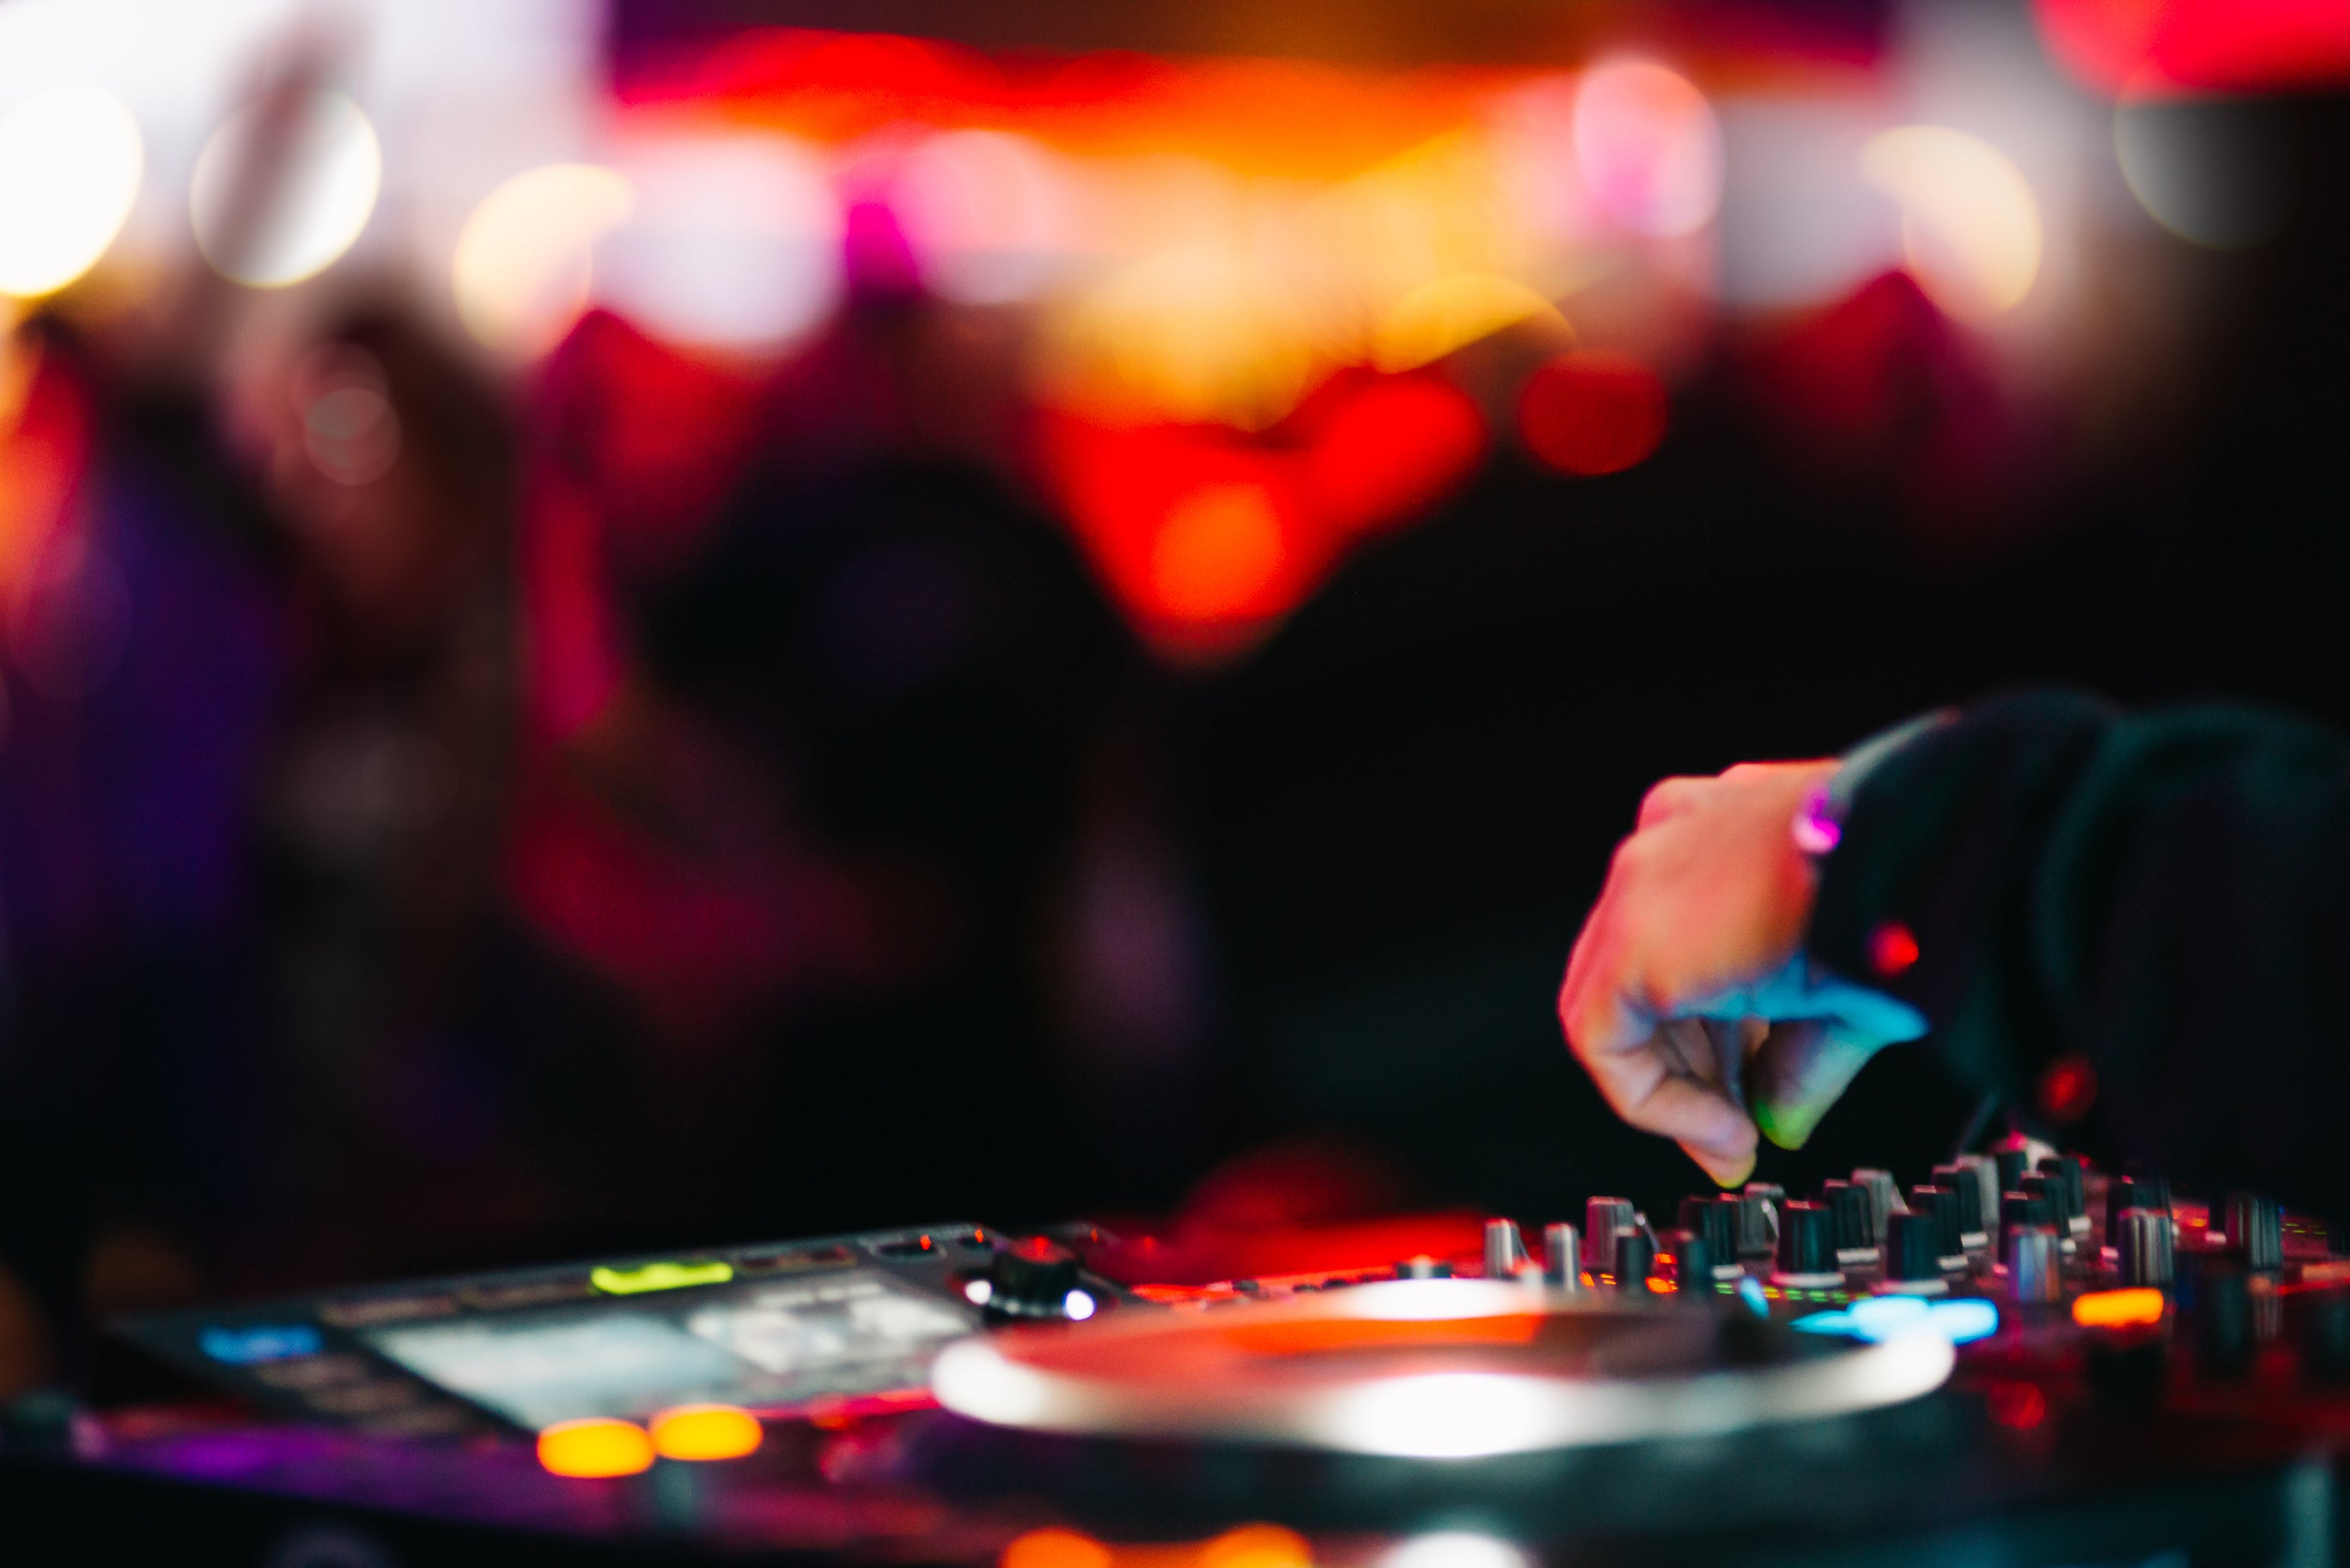 A DJ spinning in front of a dance club crowd.